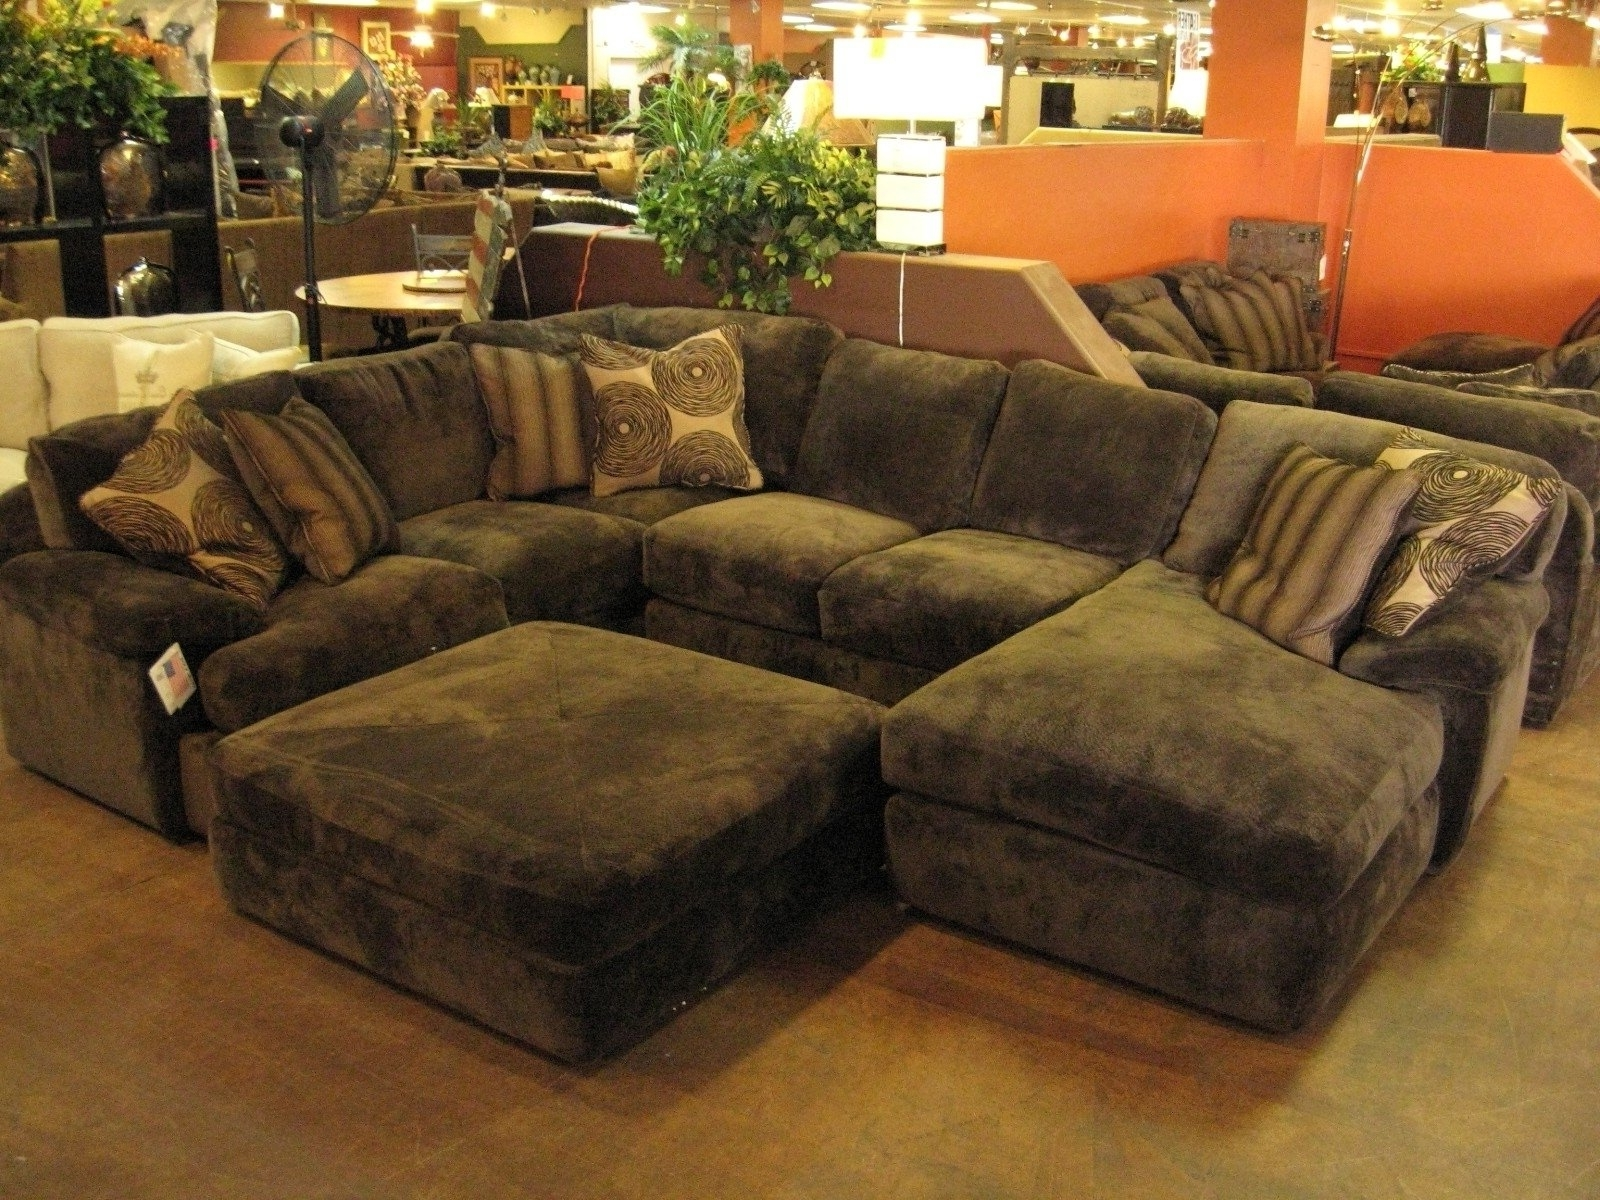 Latest Oversized Sectional Sofas Pertaining To Interior Luxury Oversized Sectional Sofa For Awesome Living Room (View 8 of 15)